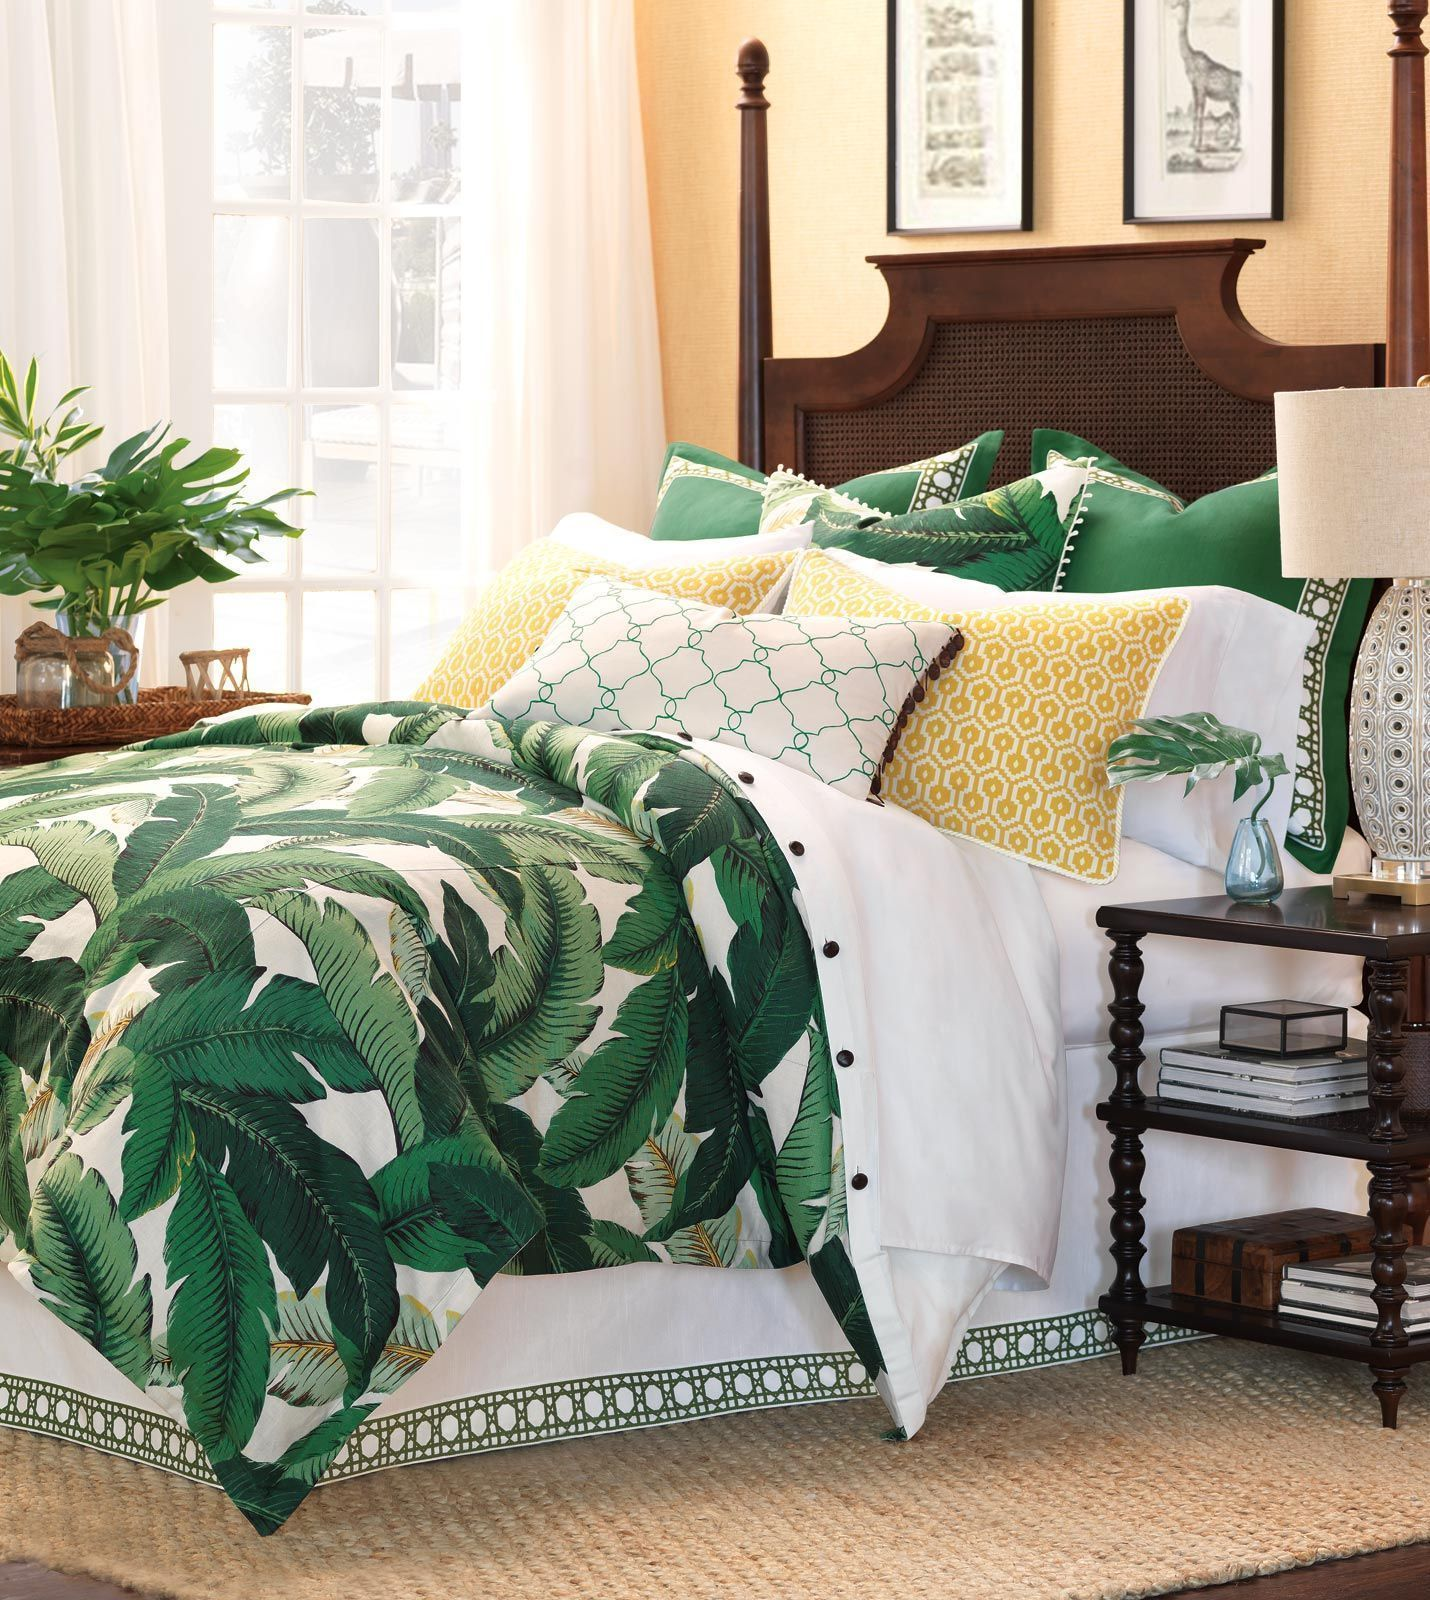 Grünes esszimmer design luxury bedding by eastern accents  lanai collection